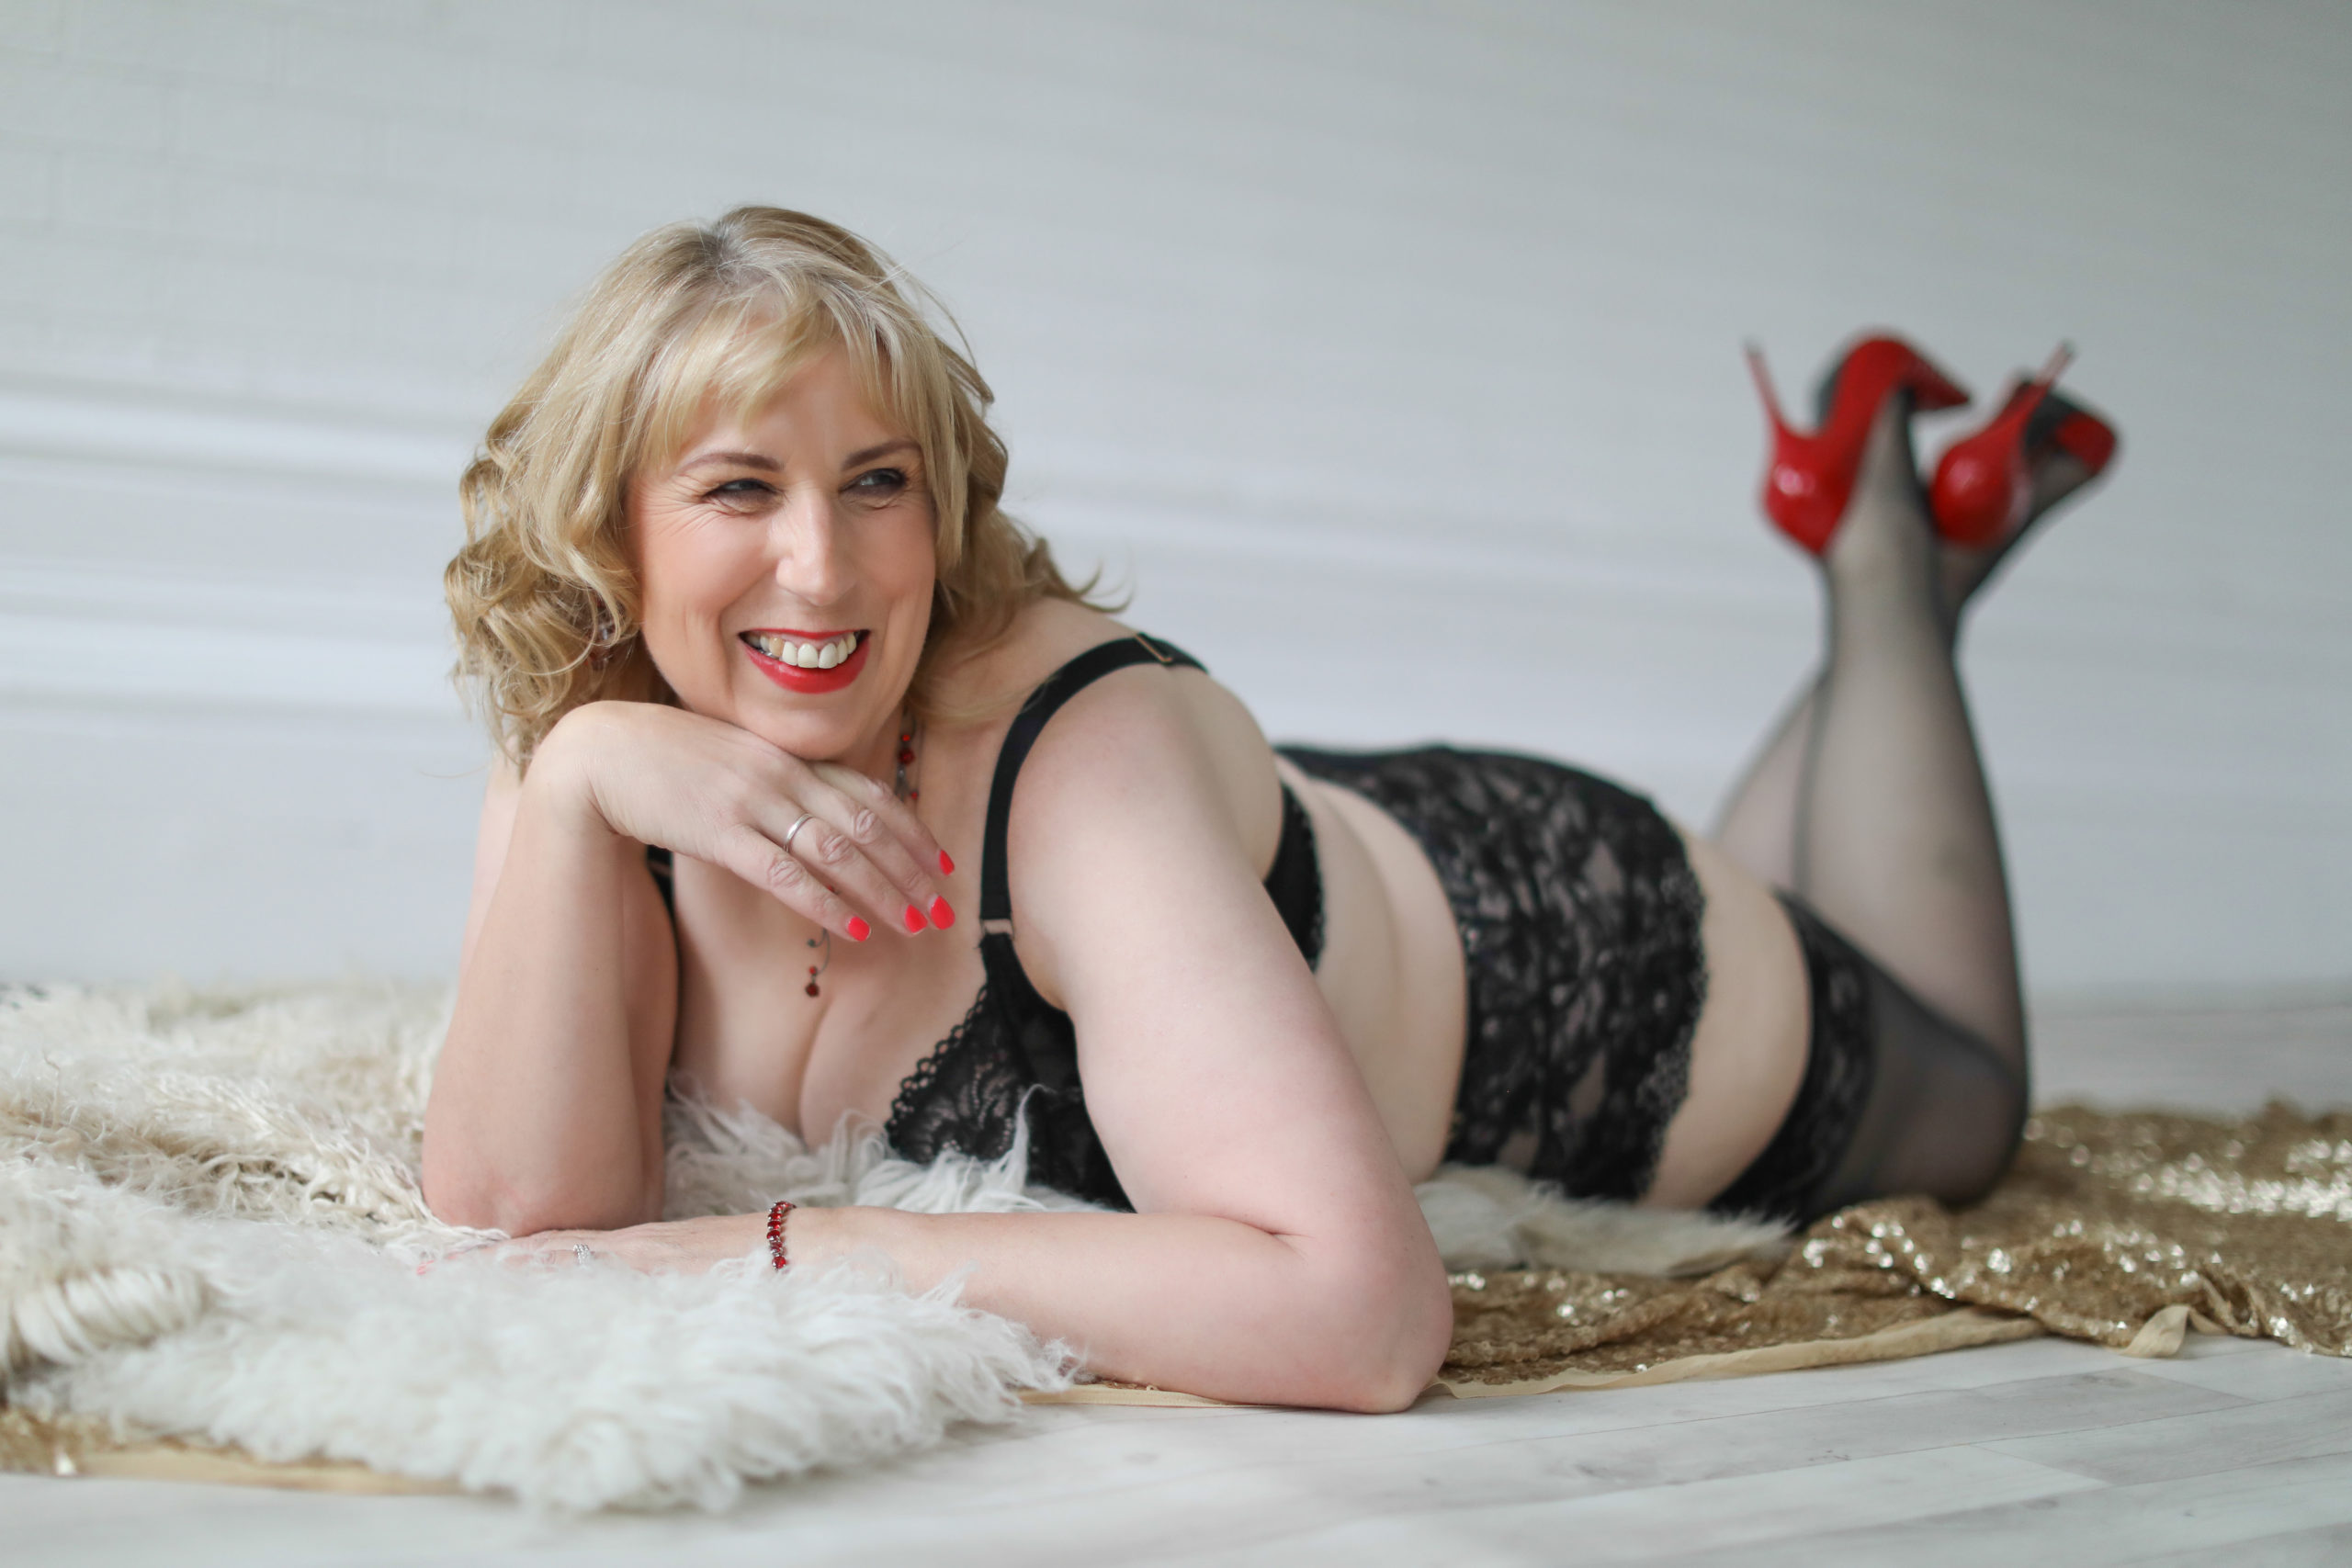 boudoir photography red shoes red lips